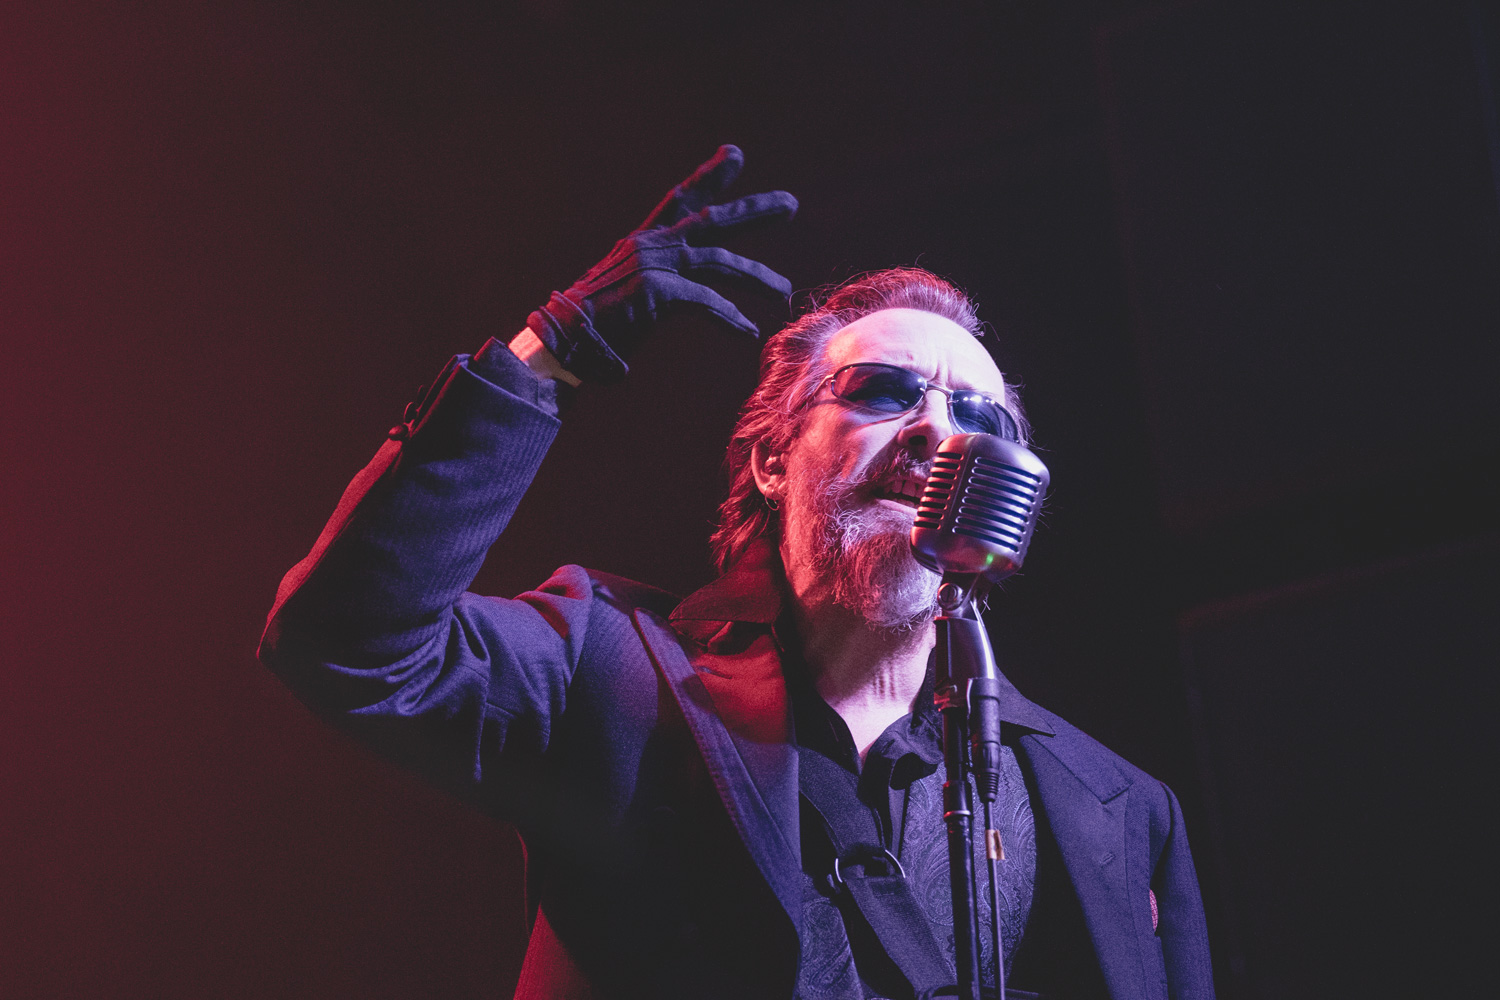 Concert Photos of The Damned - 40th Anniversary Tour - Denver, CO